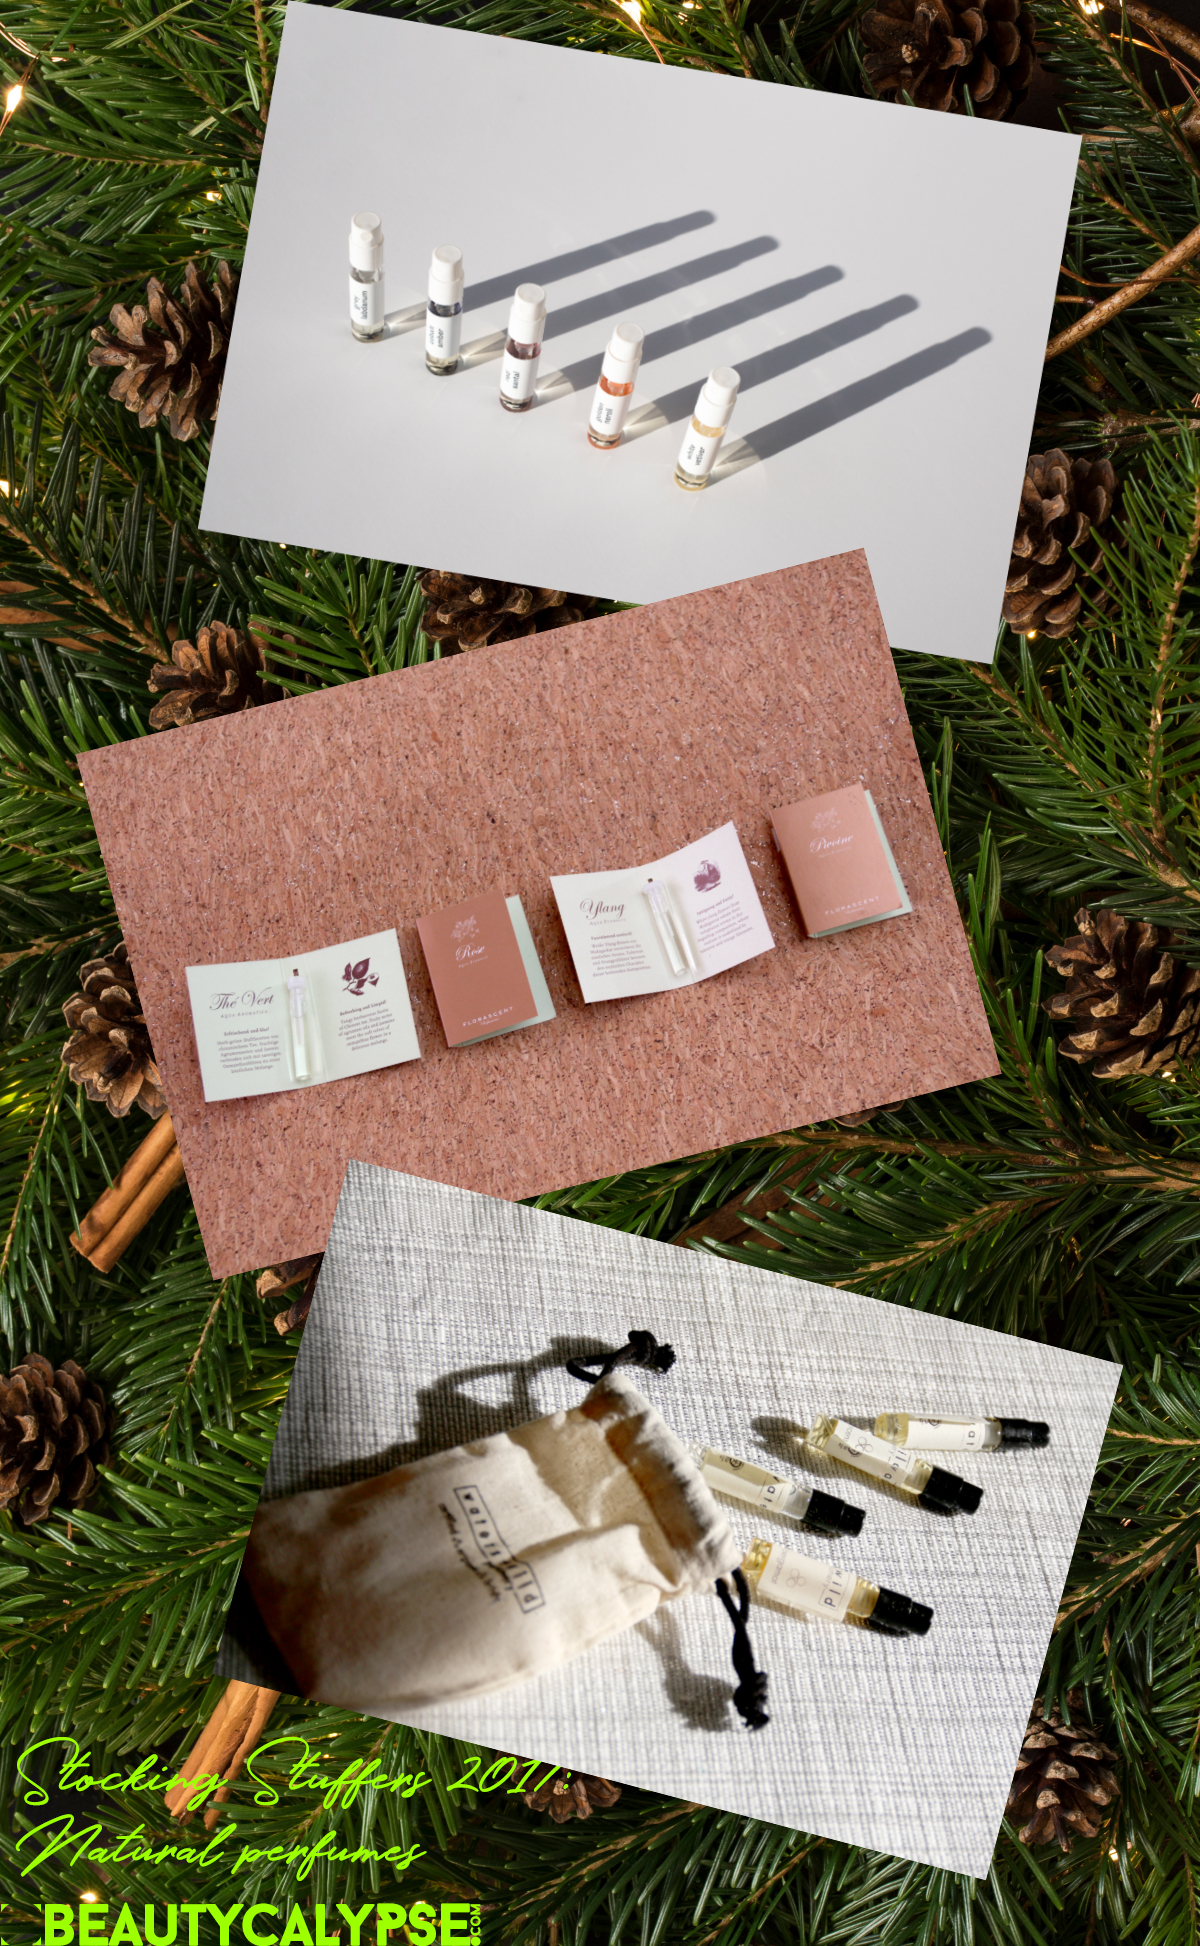 Fantastic Stocking Filler Ideas: Abel Discovery Set, Florascent, Waters + Wild natural perfumes for fragrance lovers